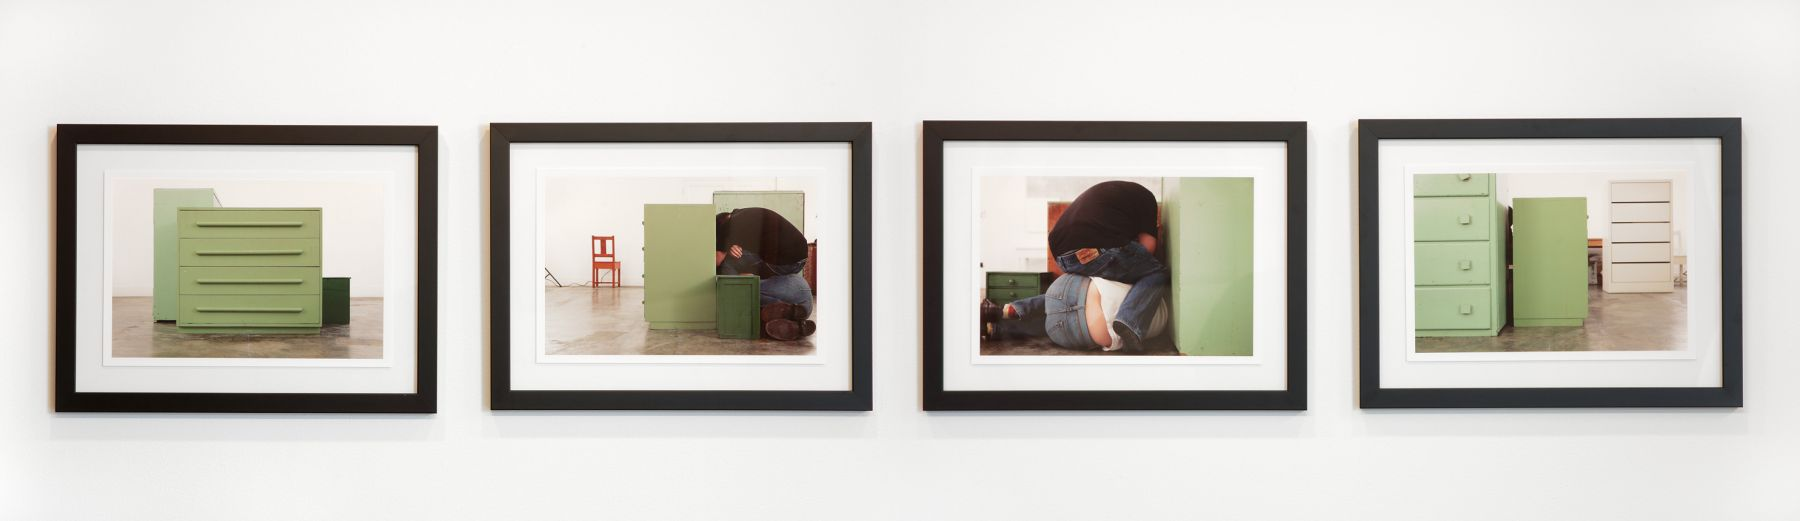 4 photographs of 4 sides of a green chest of drawers (cameras the same distance from each side) with Mike, and another green chest, 2011, Digital pigment prints